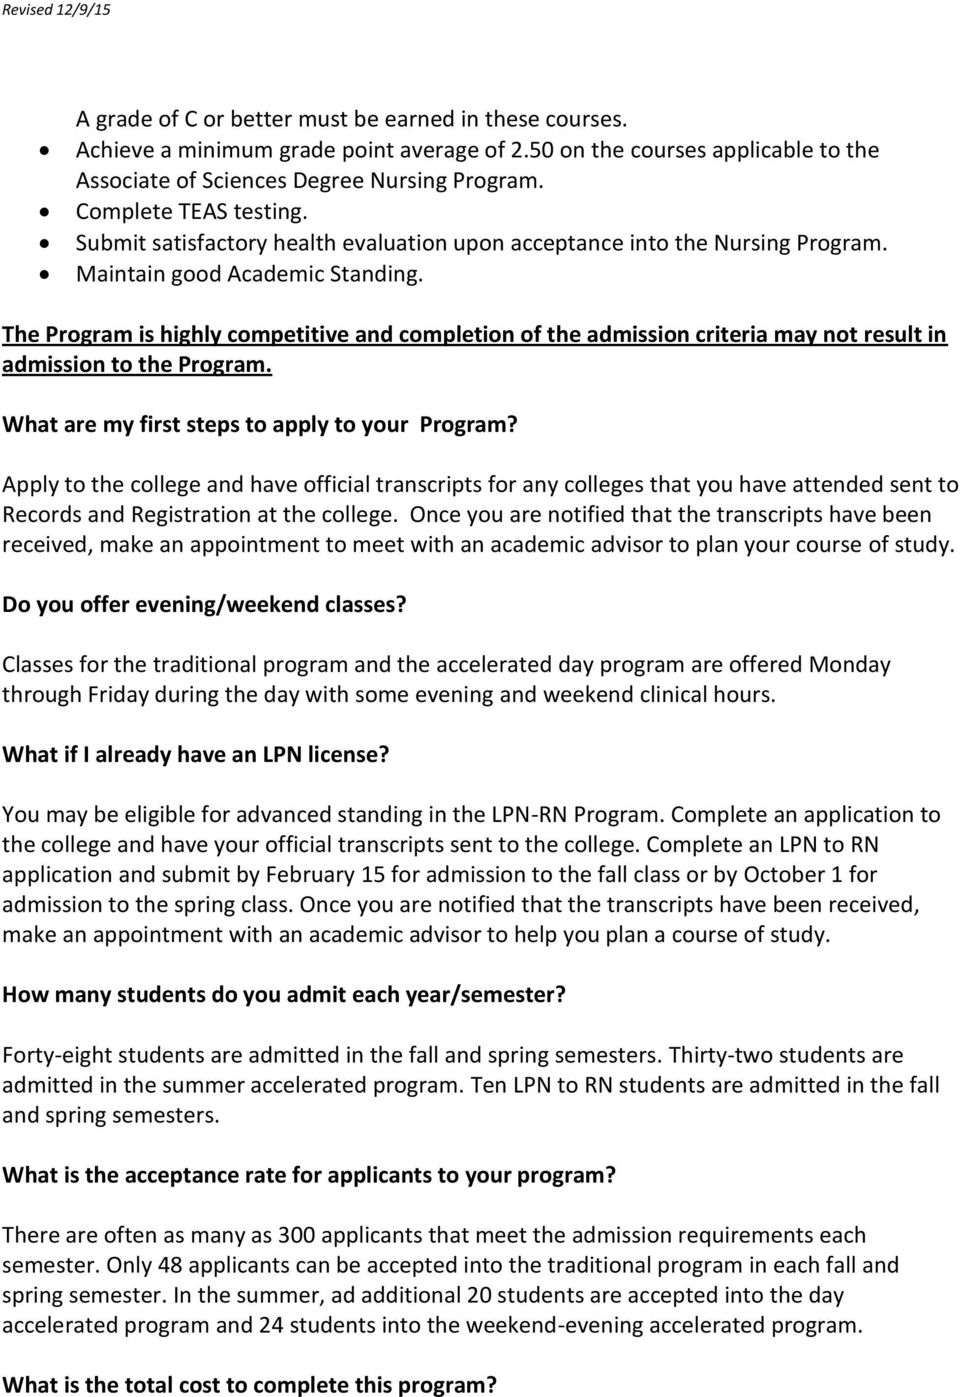 The Program is highly competitive and completion of the admission criteria may not result in admission to the Program. What are my first steps to apply to your Program?